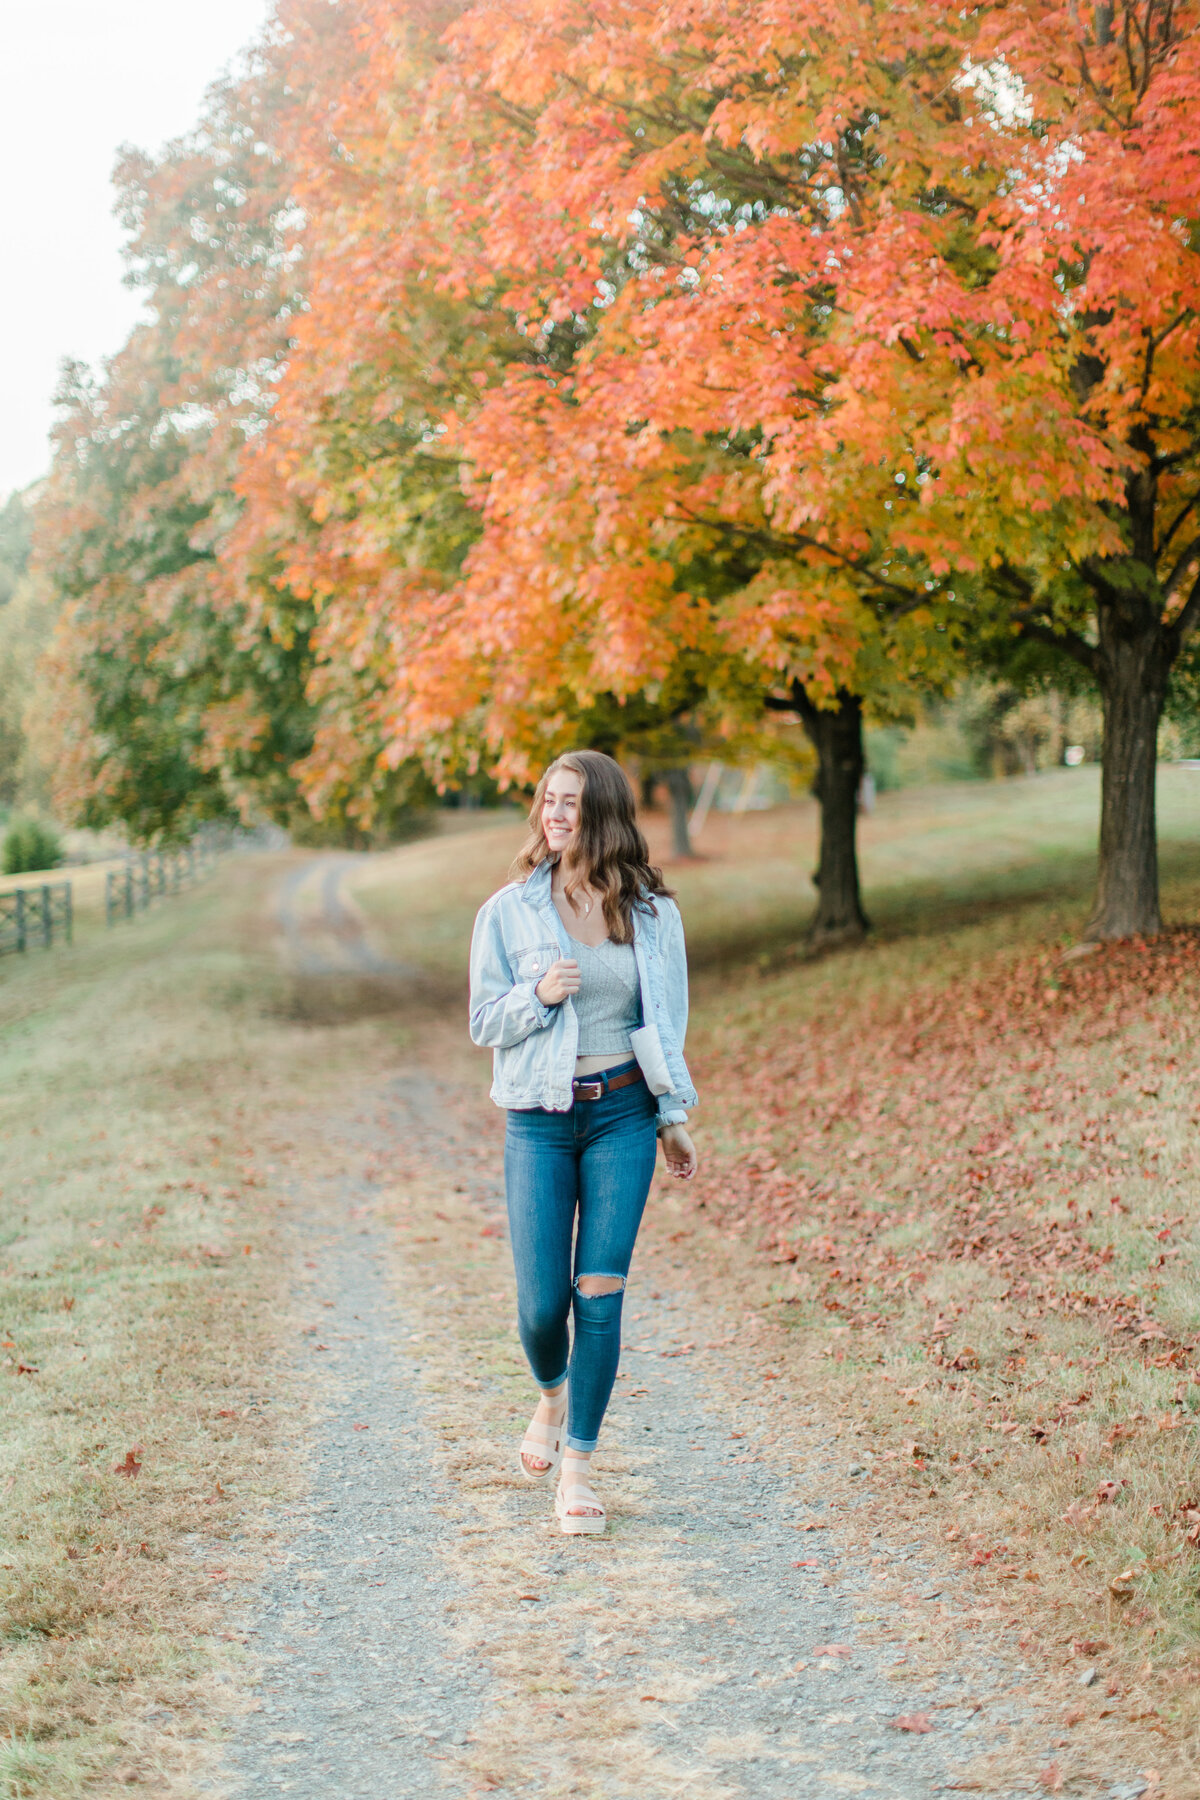 Fall_Meadowlark_Gardens_Virginia_DC_Senior_Portrait_Session_Photographer_Angelika_Johns_Photography-8987